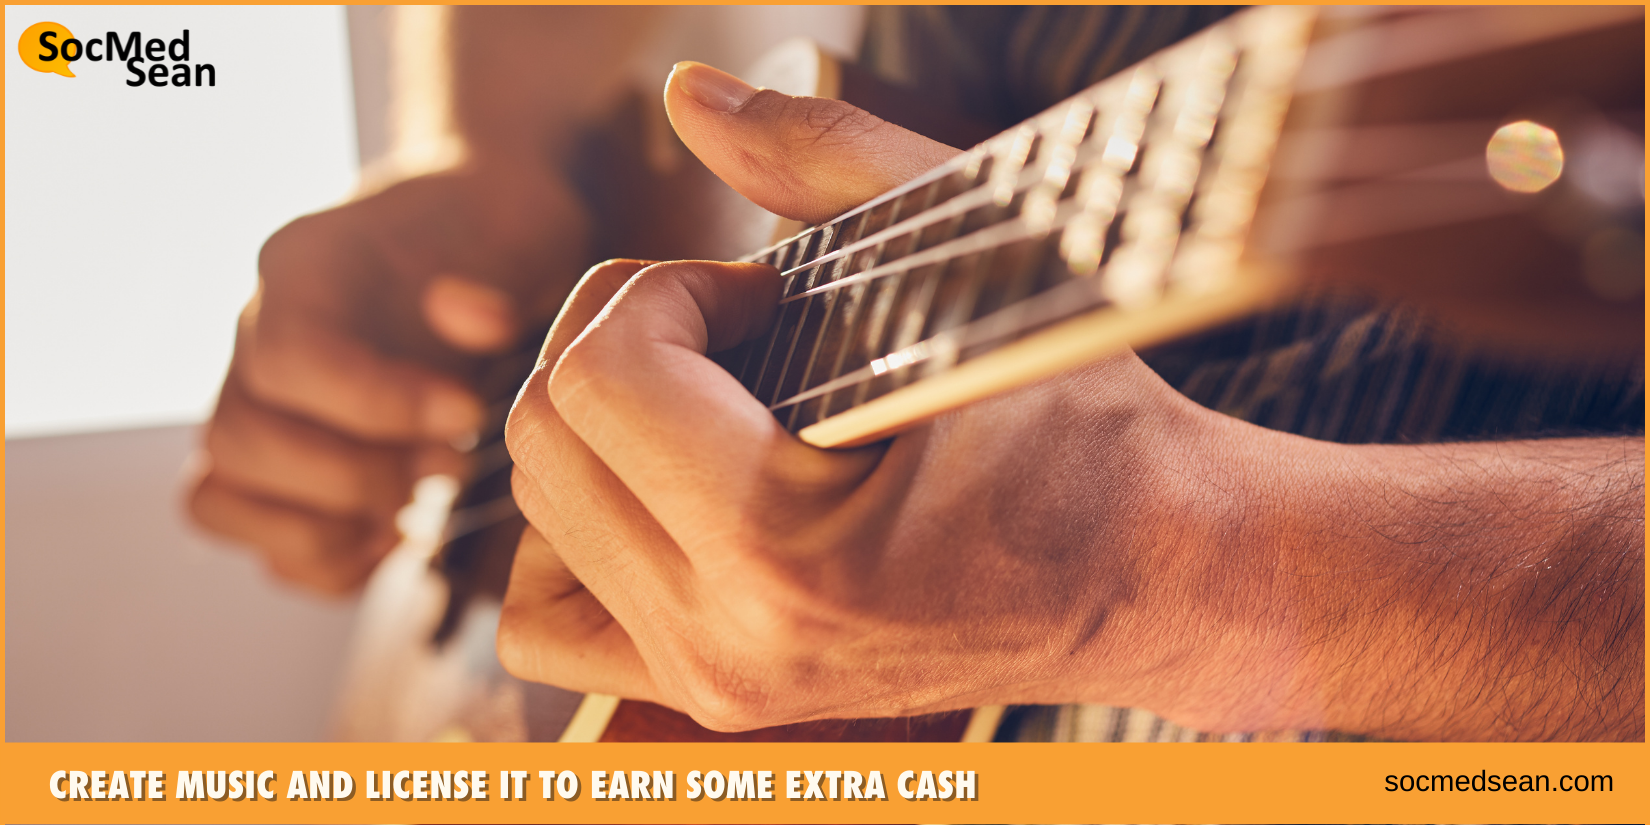 Create Music And License It to earn some extra cash